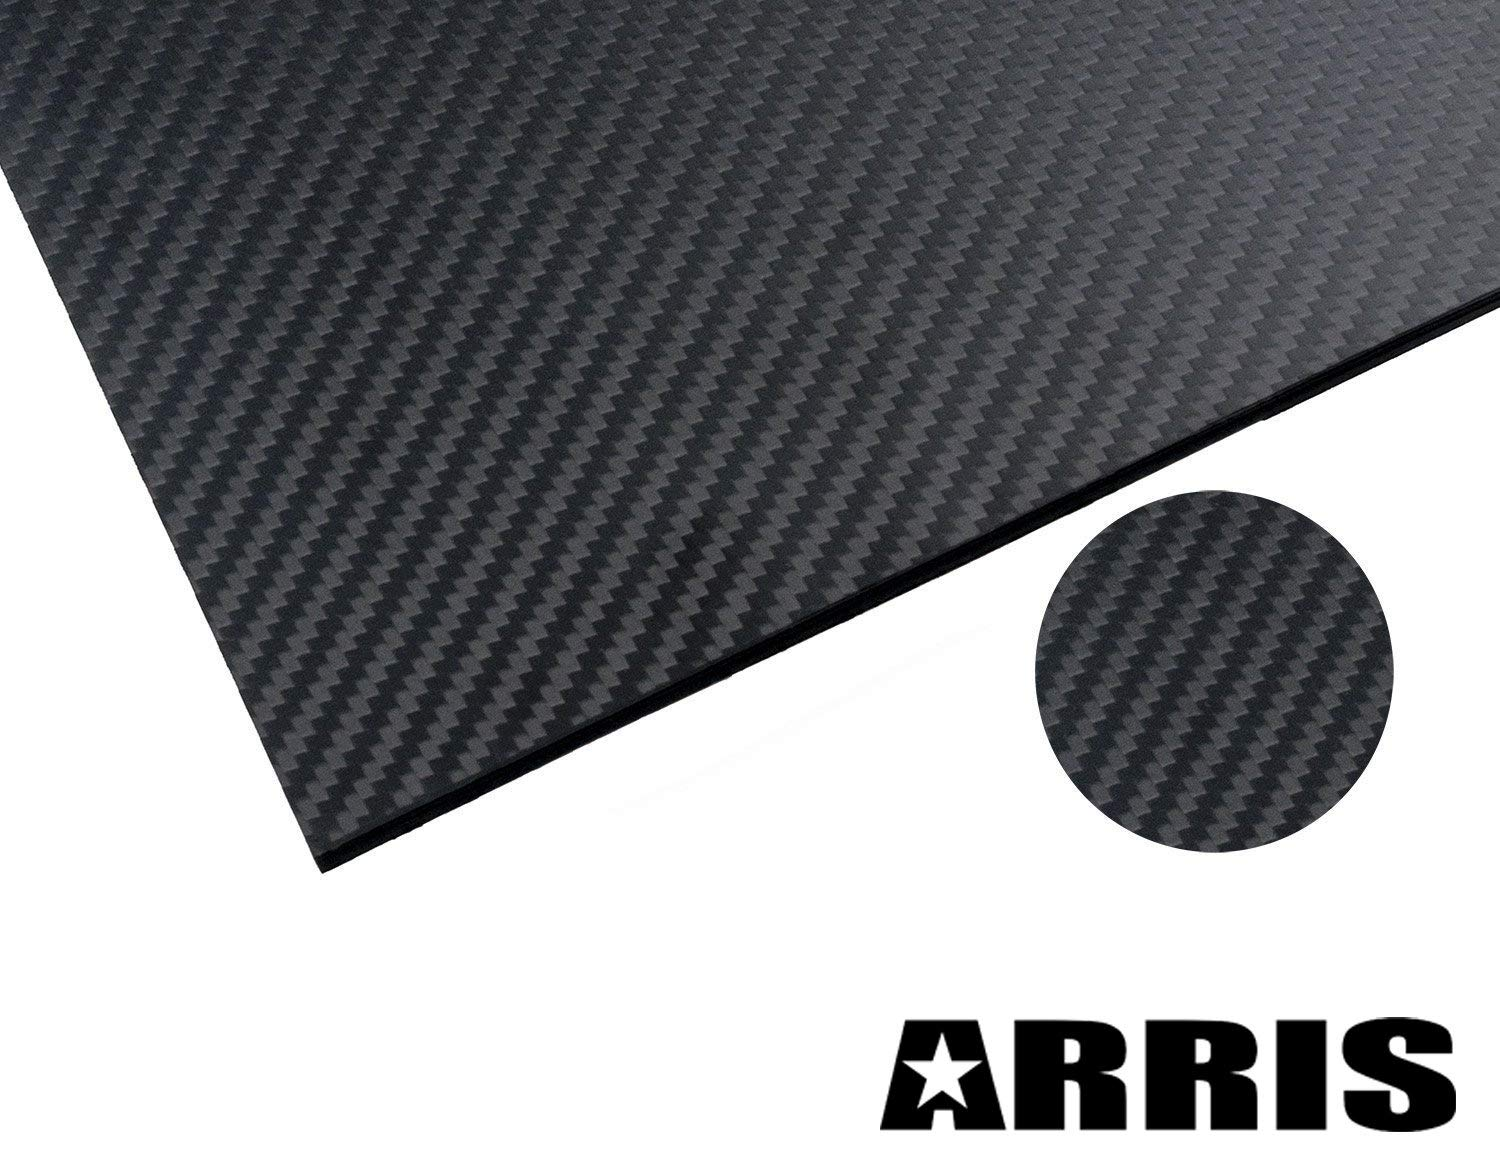 ARRIS 3.0mm 400X500X3.0MM 100% 3K Carbon Fiber Plate Plain Weave Panel Sheet (Glossy Surface) by ARRIS